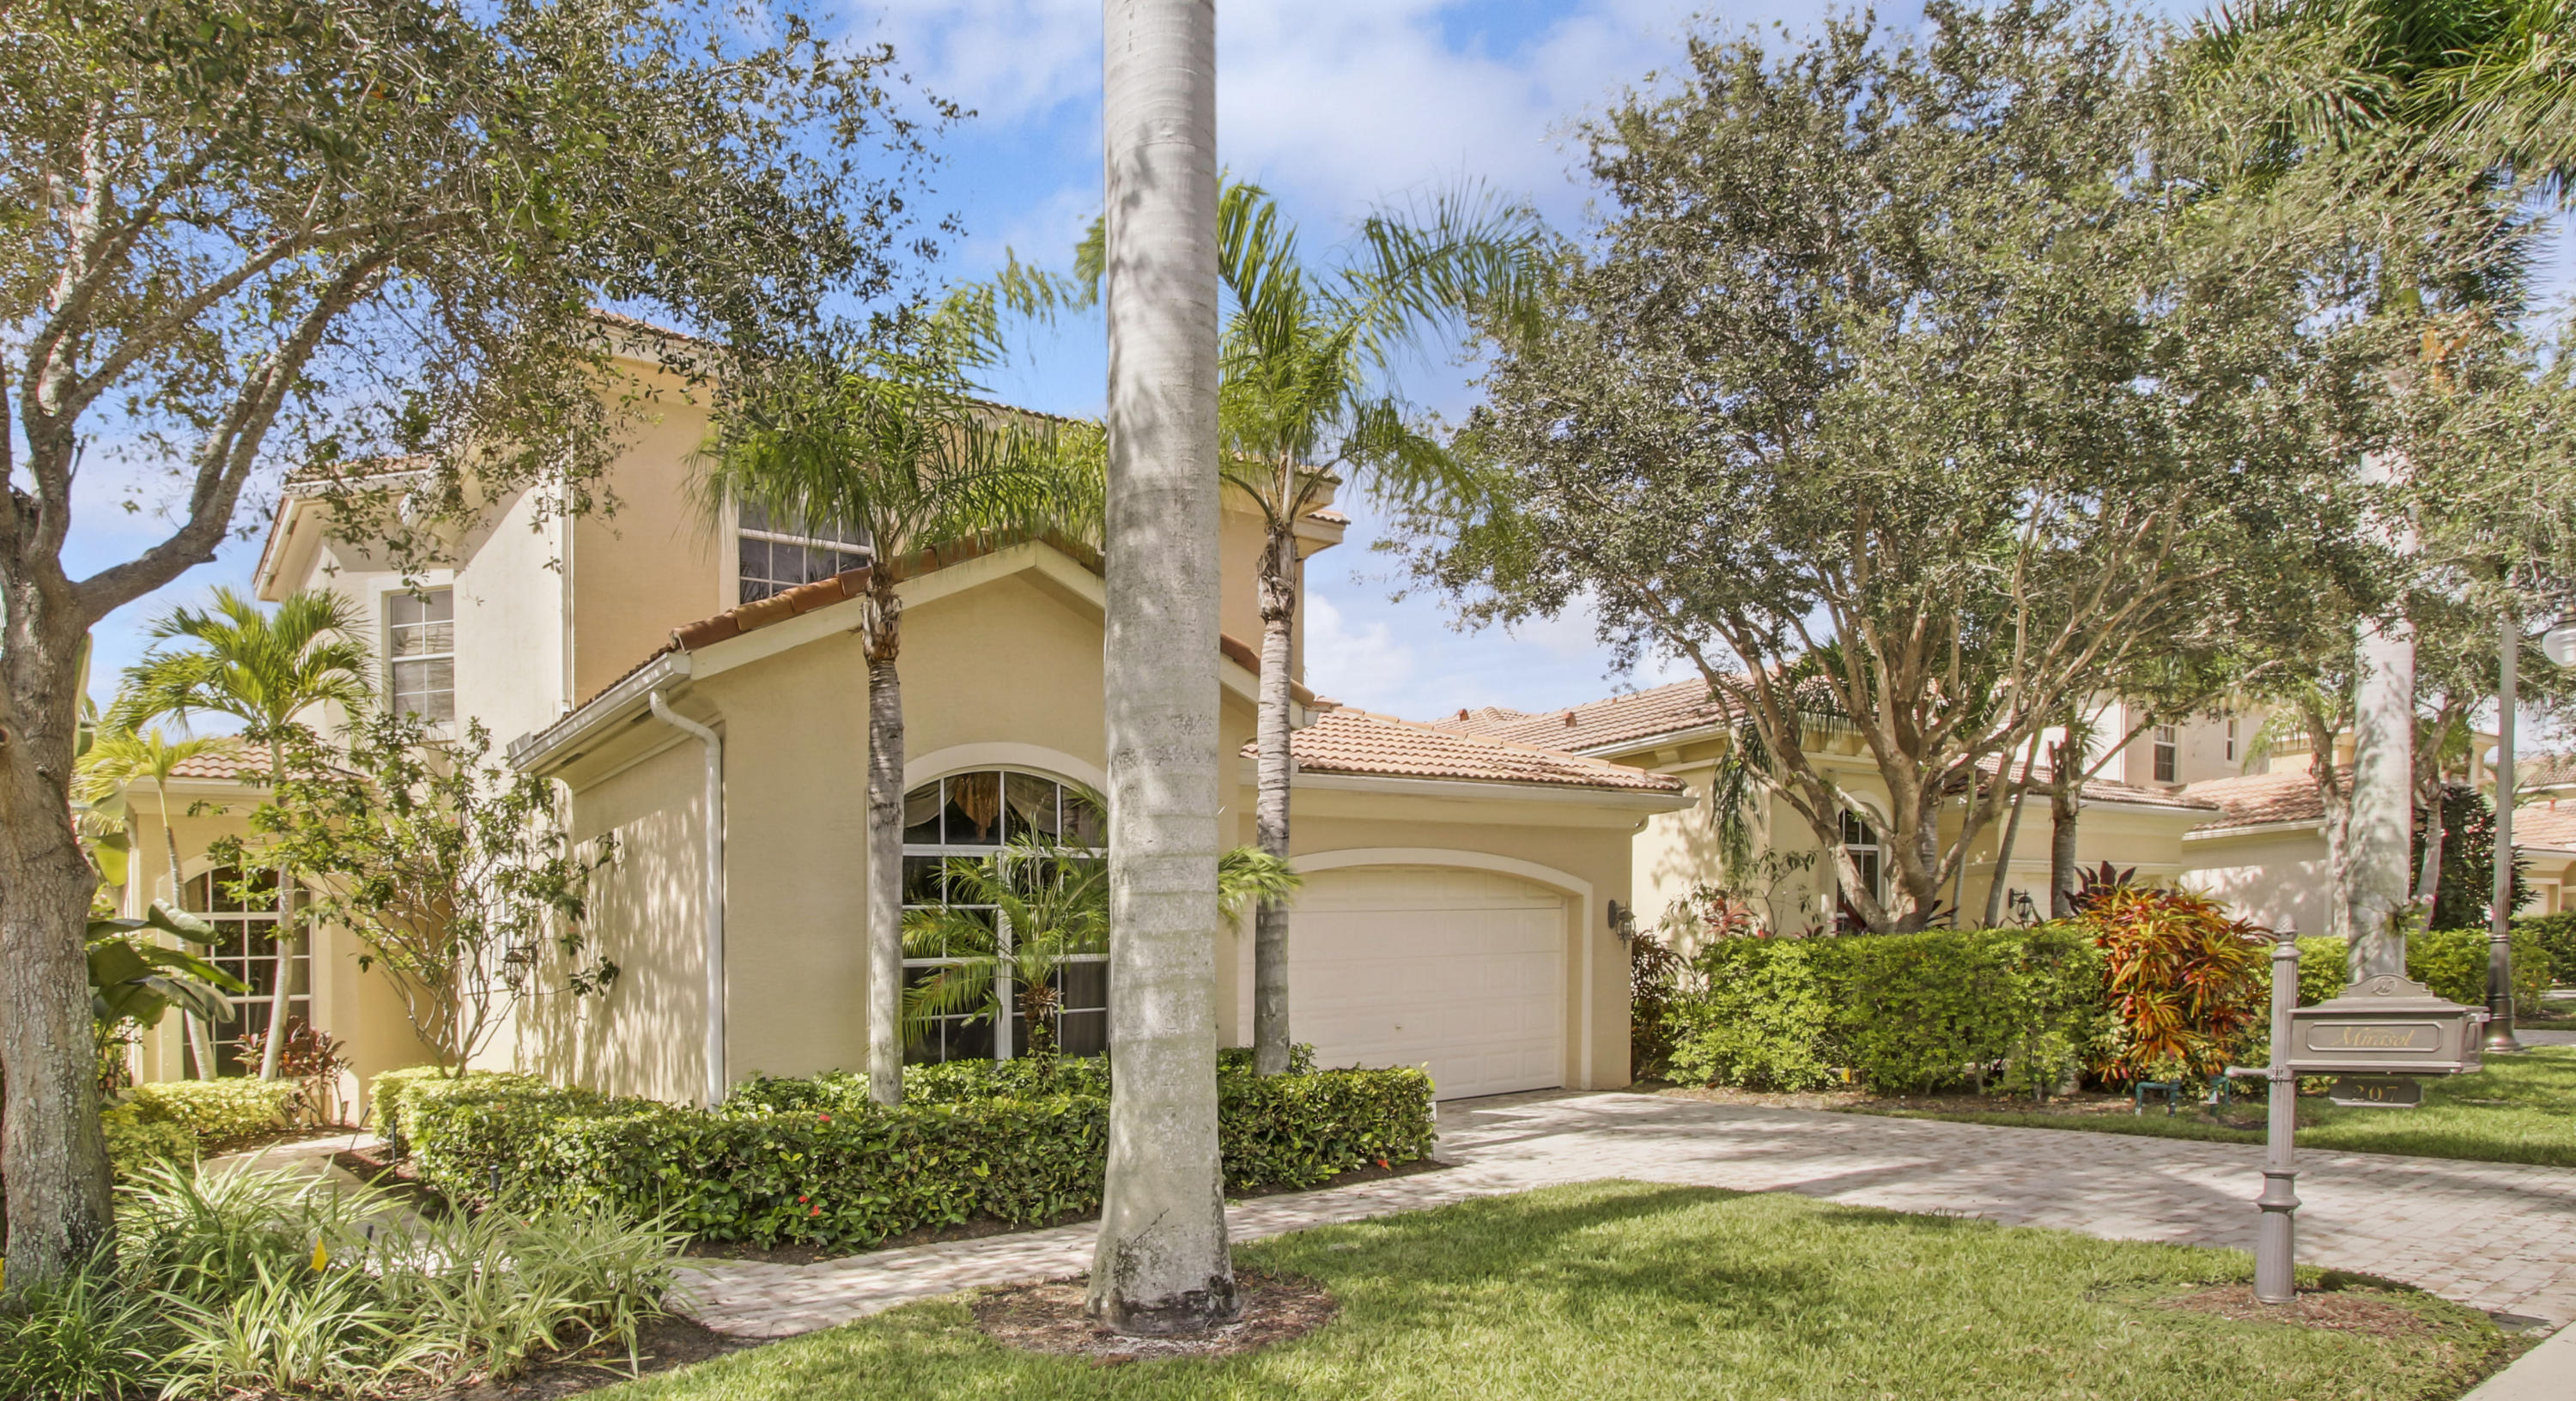 207 Andalusia Drive, Palm Beach Gardens, Florida 33418, 4 Bedrooms Bedrooms, ,3 BathroomsBathrooms,F,Single family,Andalusia,RX-10473939